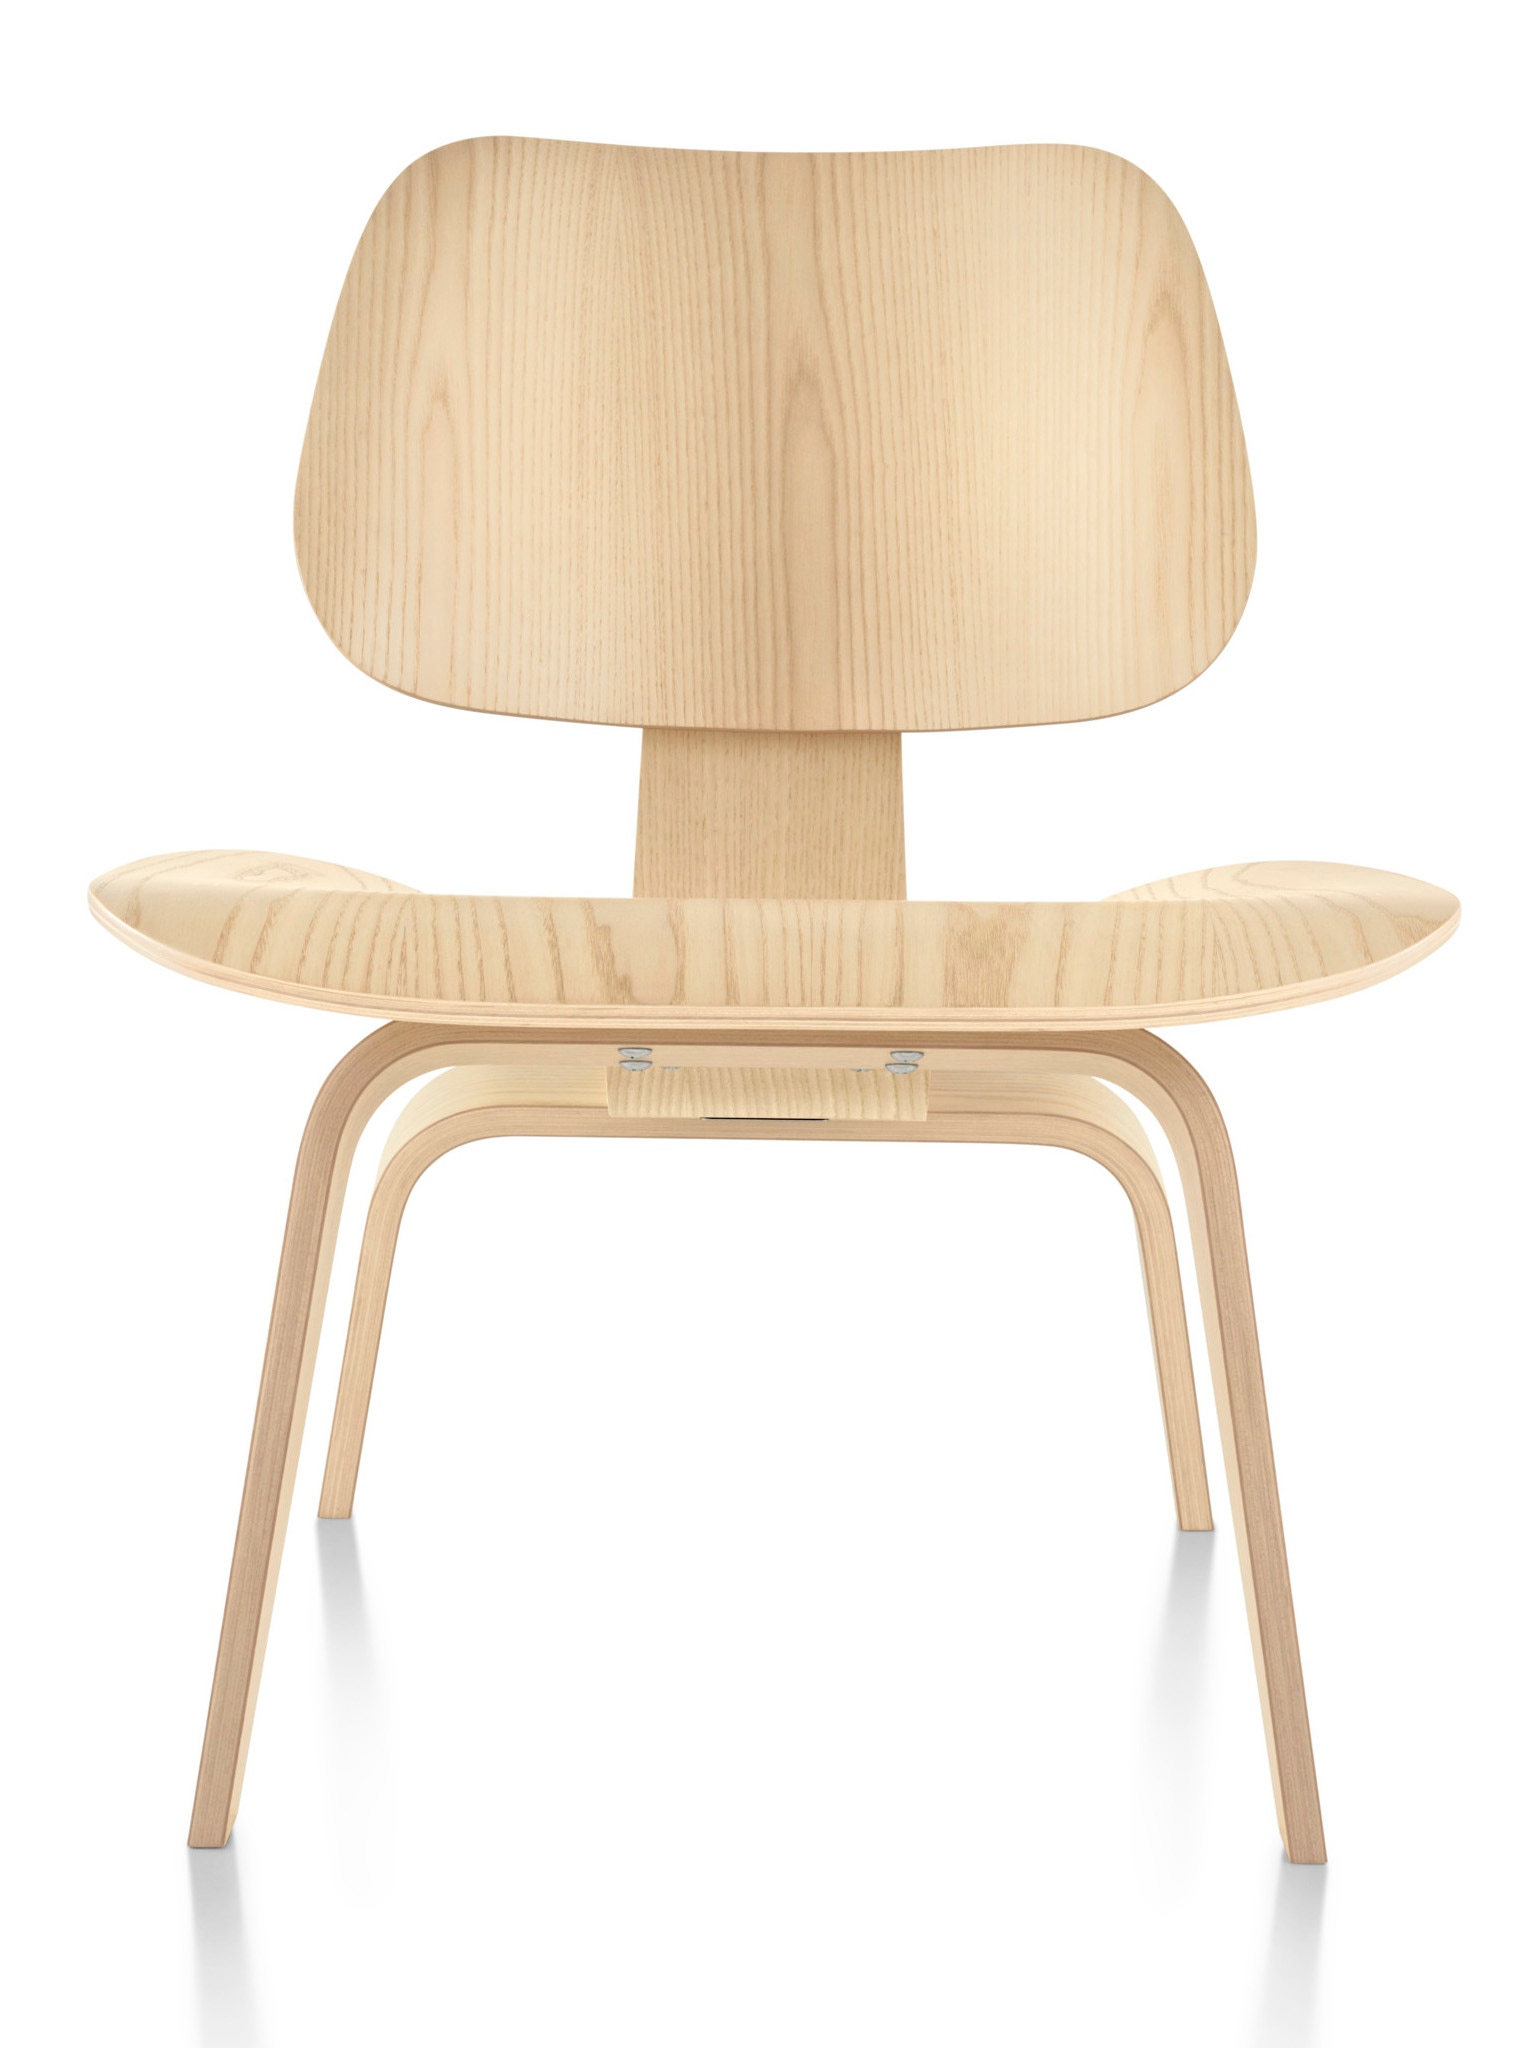 Herman Miller Eames Molded Plywood Lounge Chair Wood